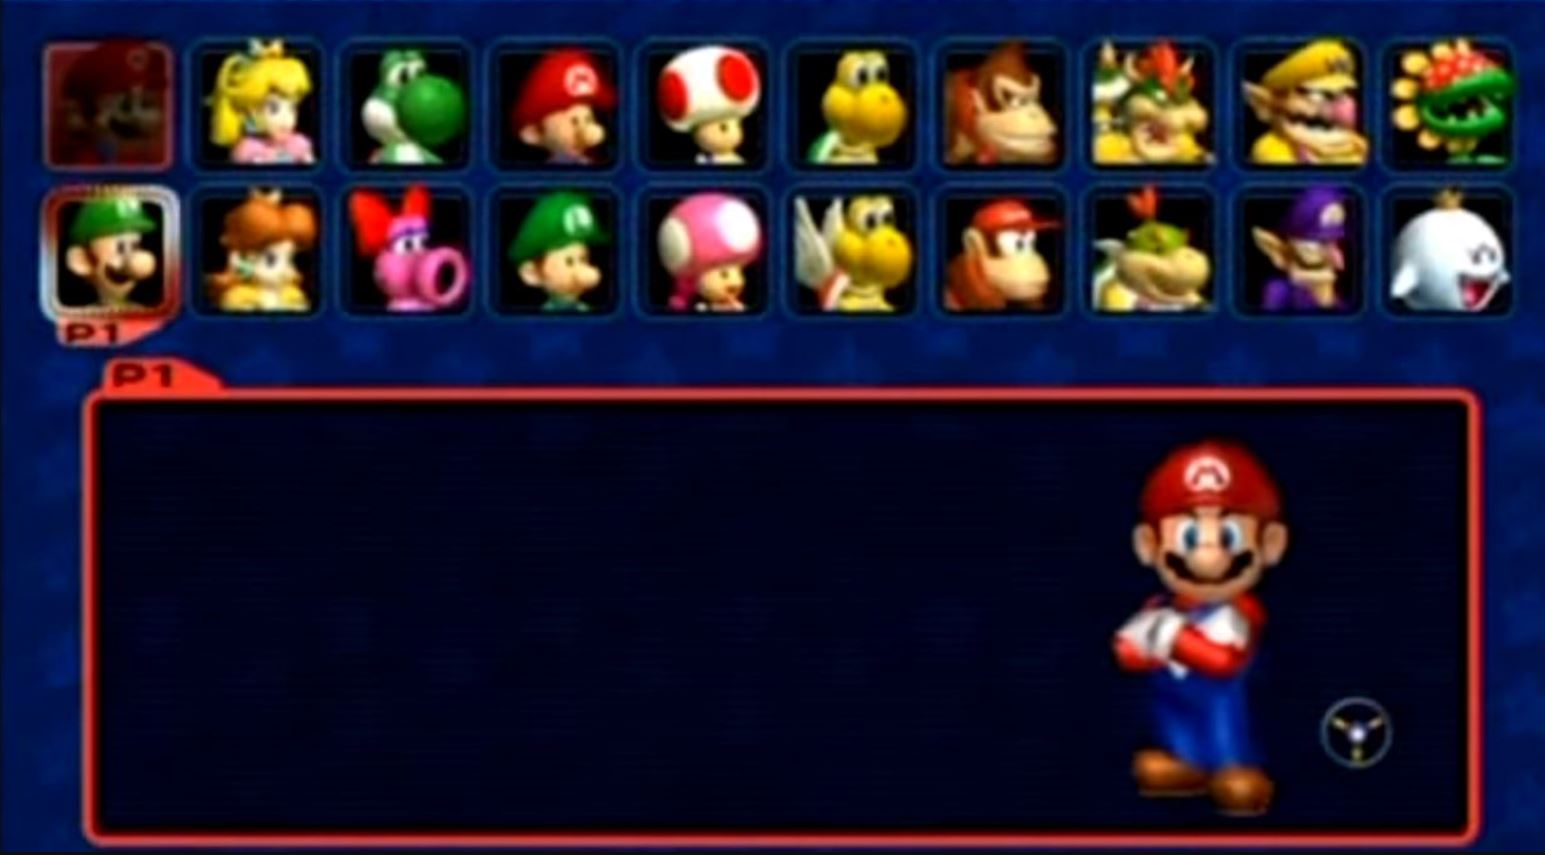 Mario Kart Double Dash Offers A Nostalgic Blast From The